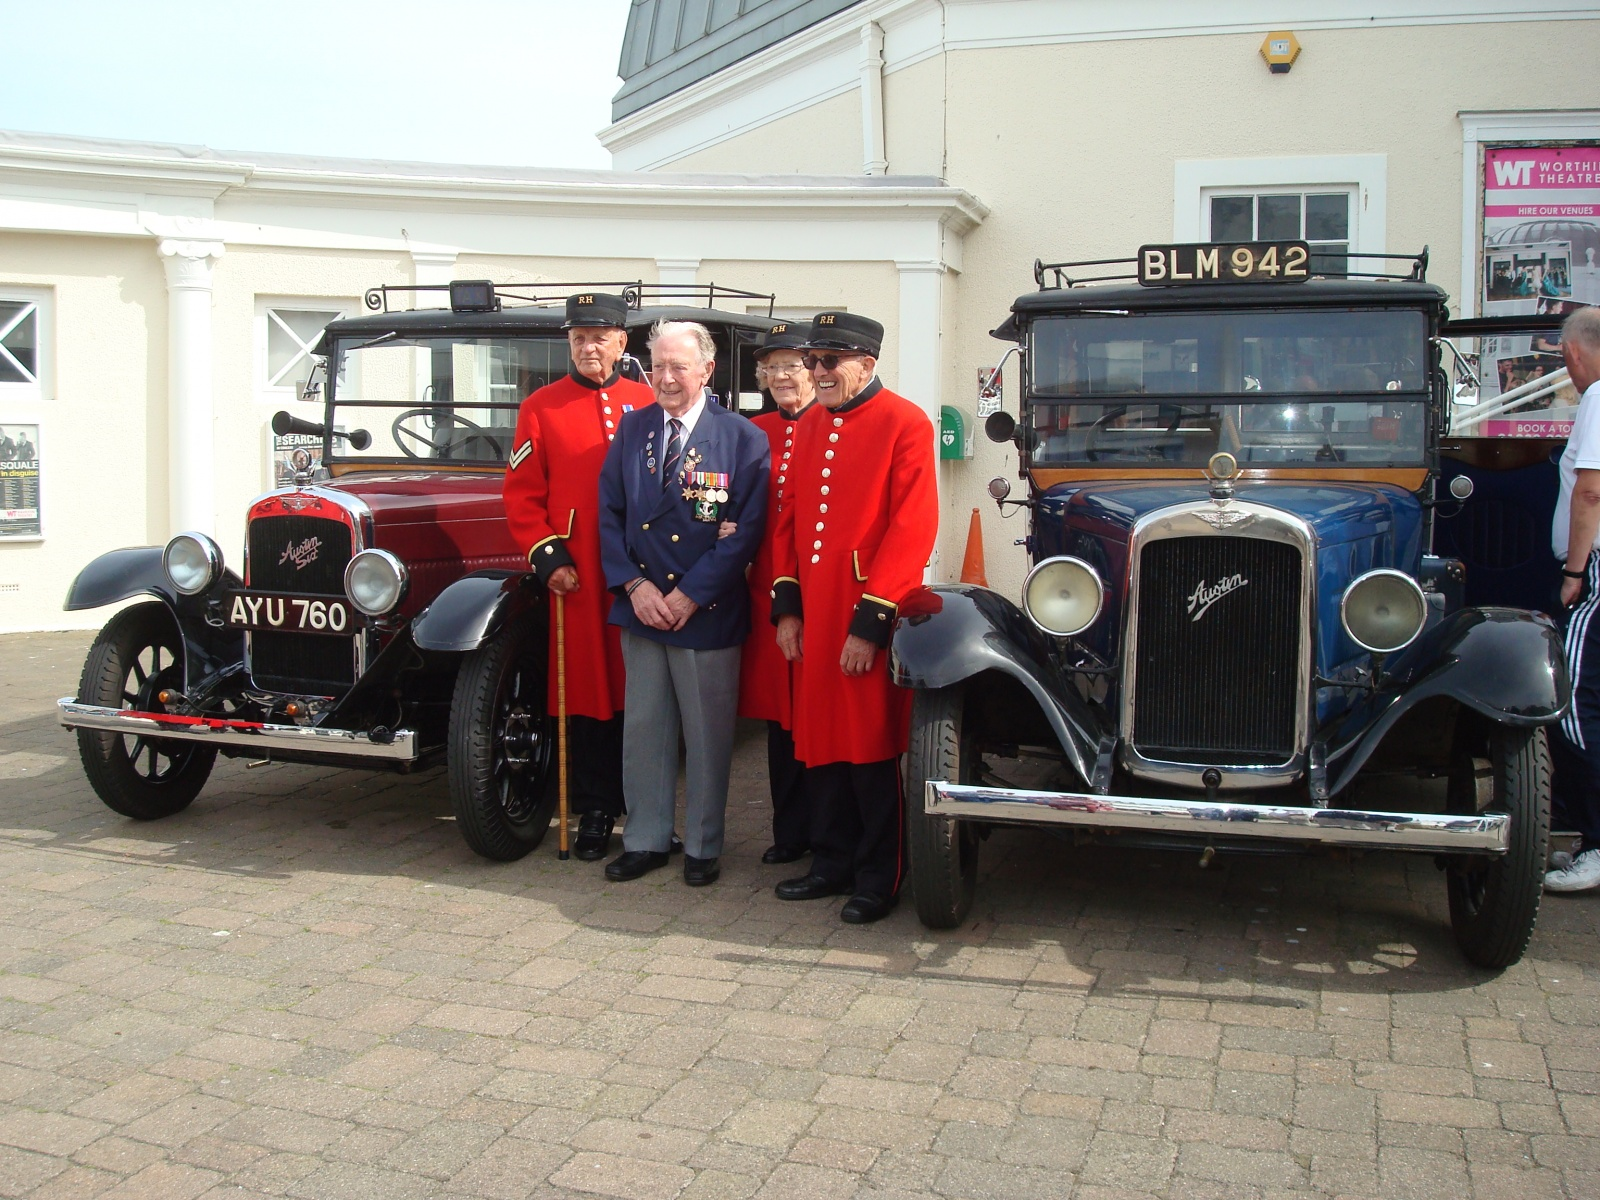 Military Veterans' Trip to Worthing - Chelsea Pensioners. Women were accepted at the Royal Hospital from 2009